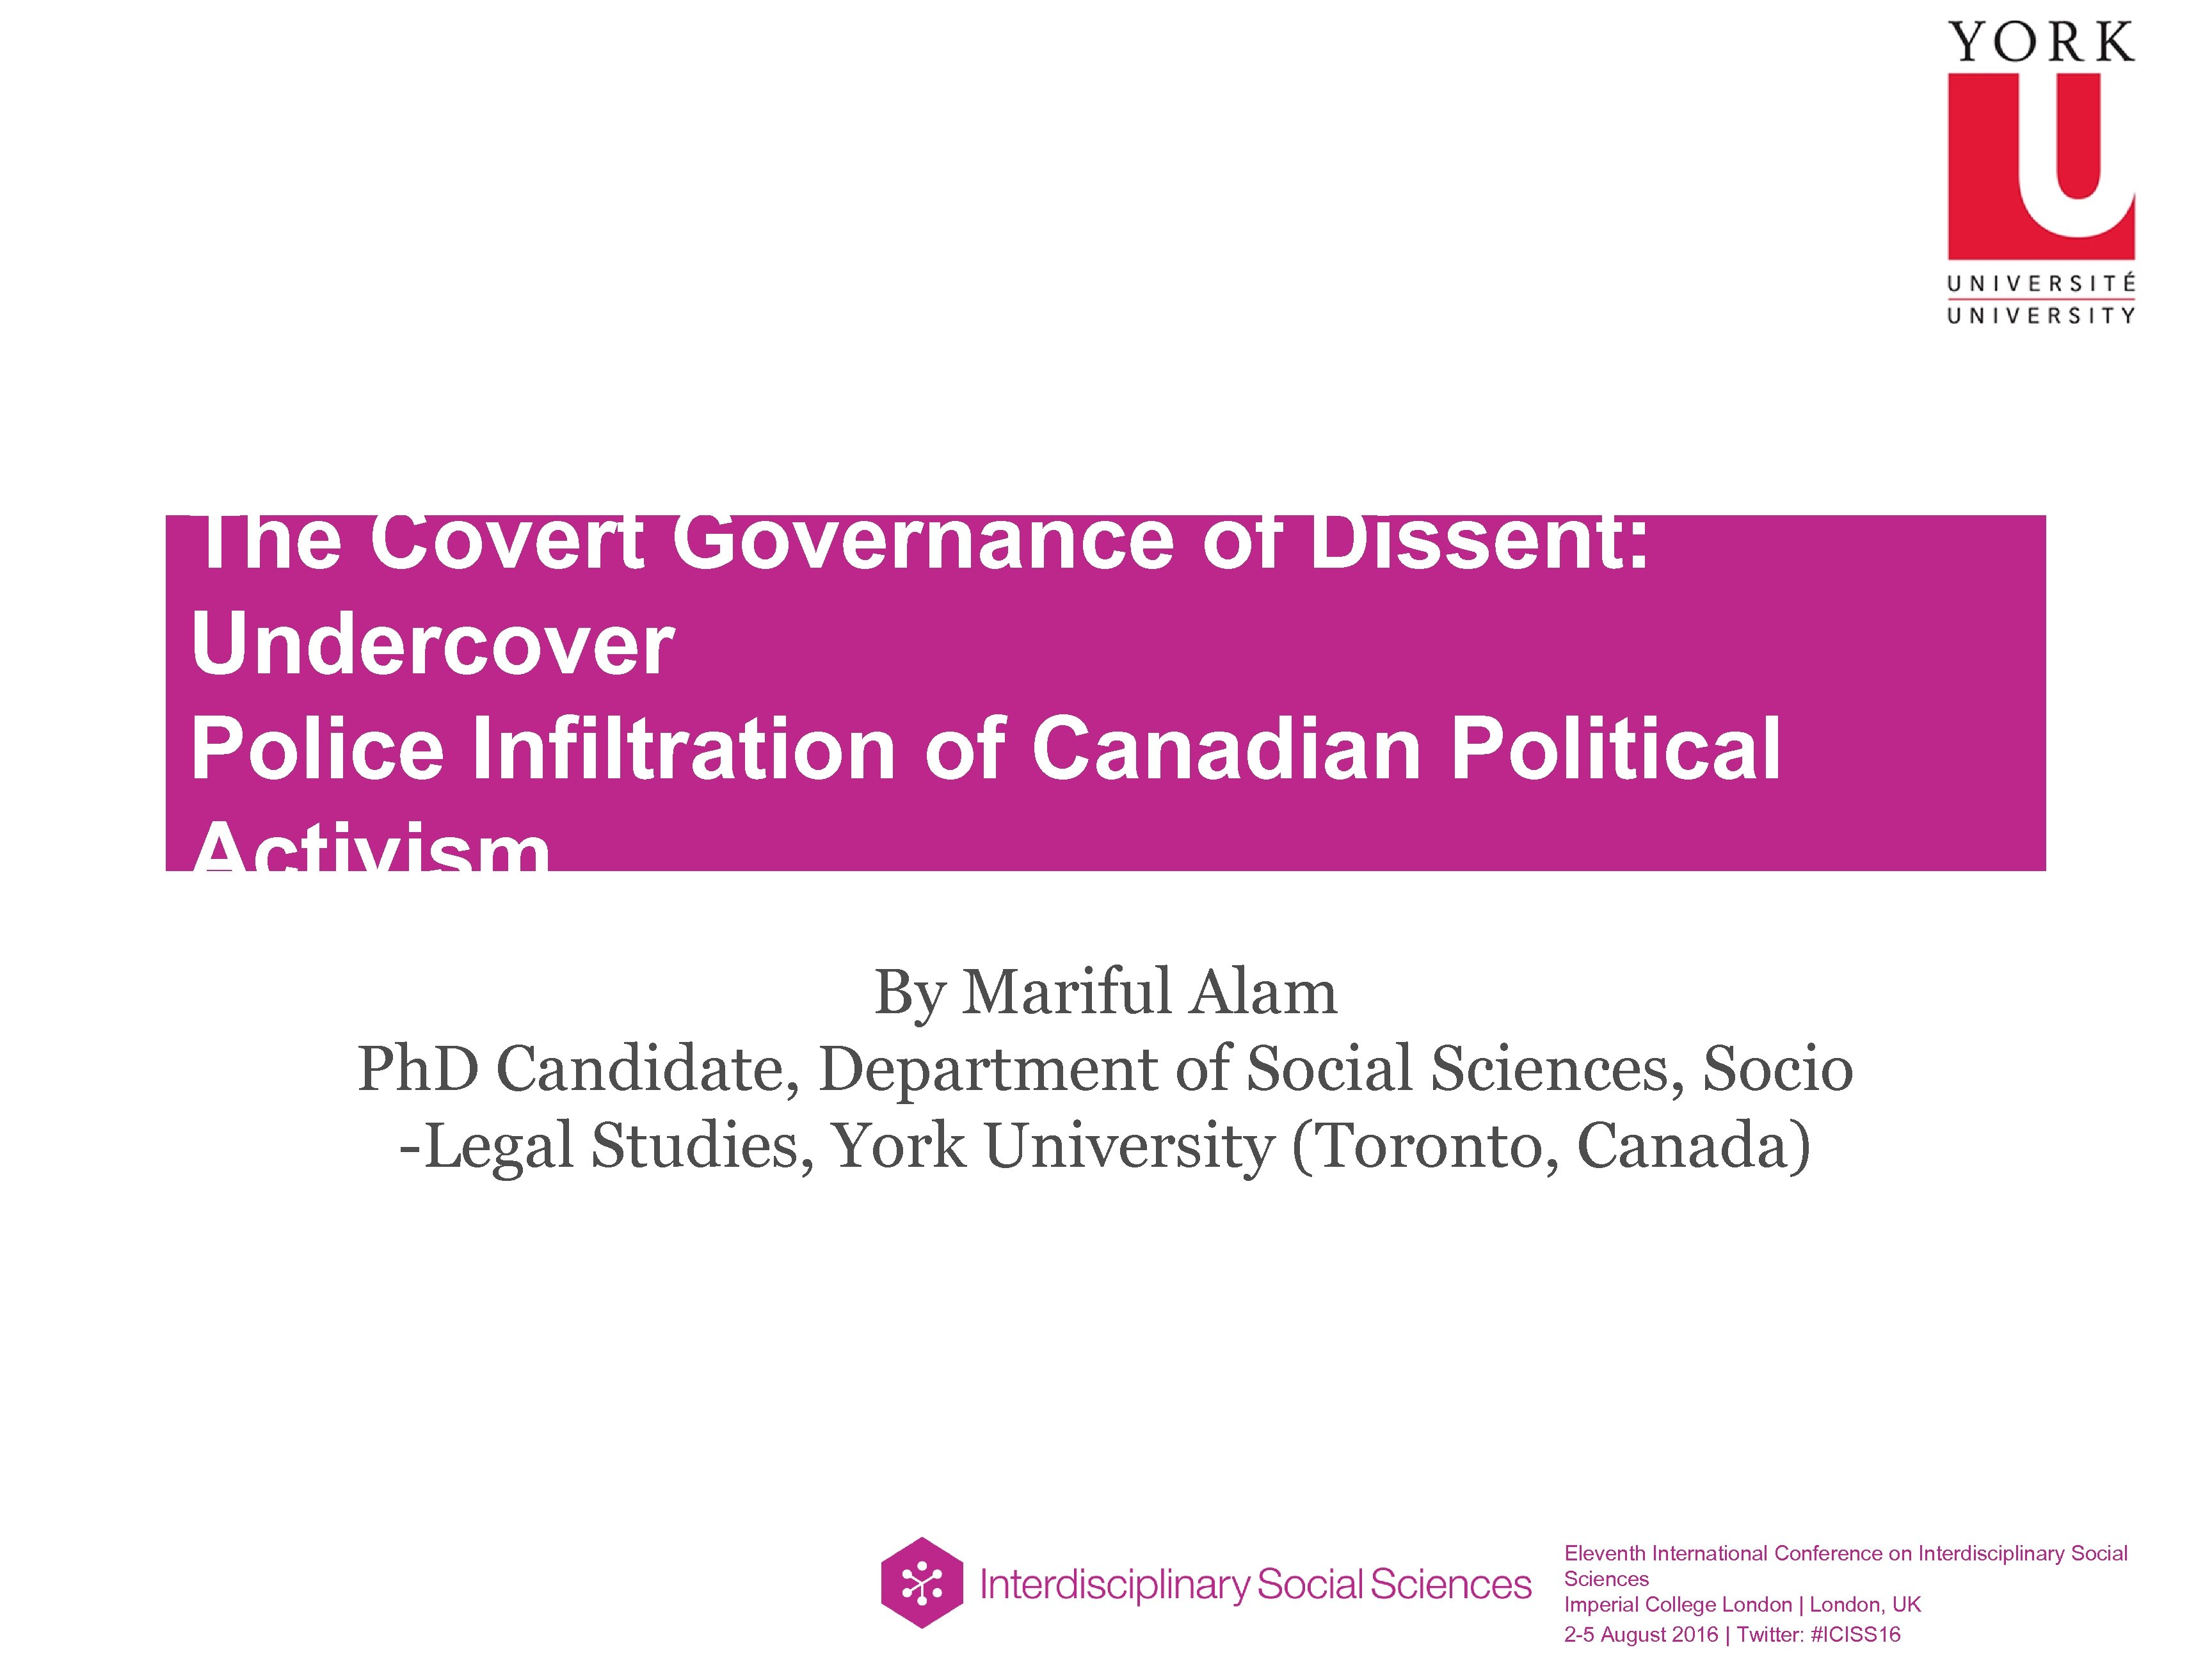 The Covert Governance of Dissent: Undercover Police Infiltration of Canadian Political Activism By Mariful